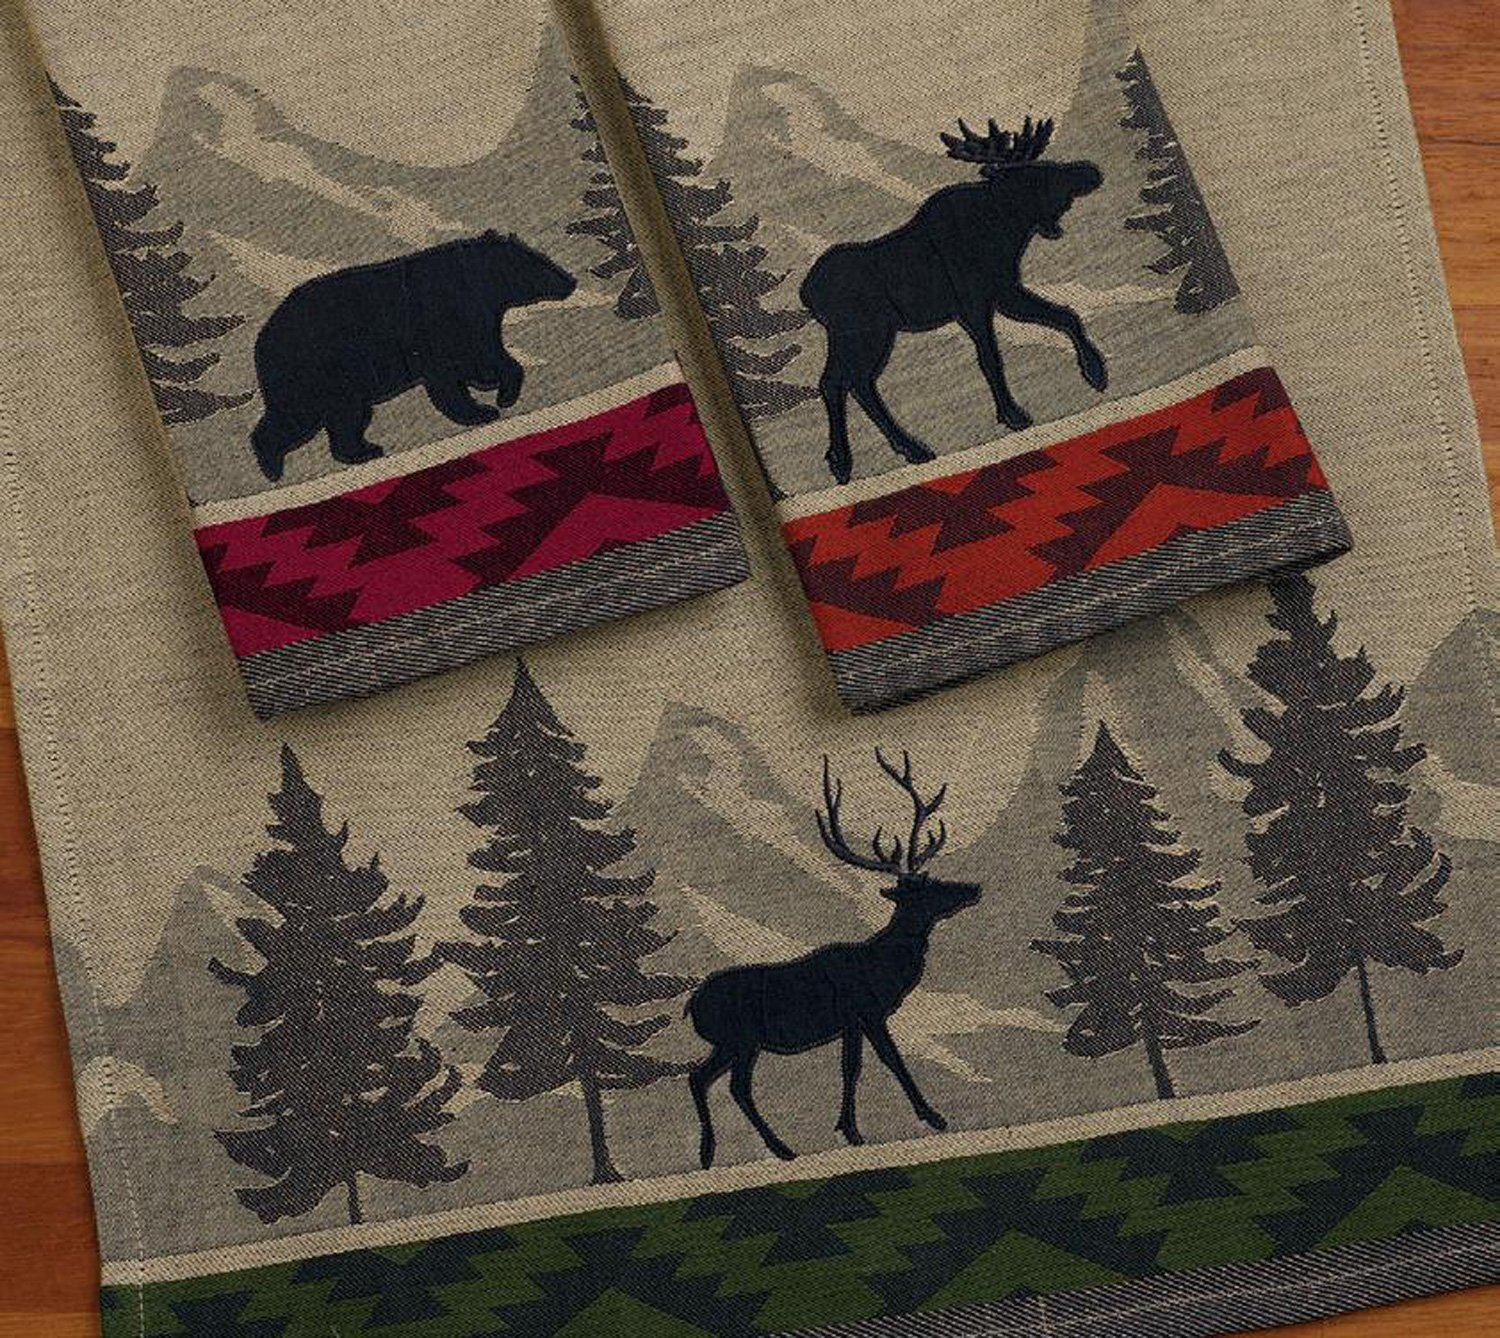 Design Imports A Walk in the Woods Table Linens, 18-Inch by 28-Inch Dishtowels, Set of 3, Walk in the Woods Jacquard – 1 Bear, 1 Moose and 1 Elk